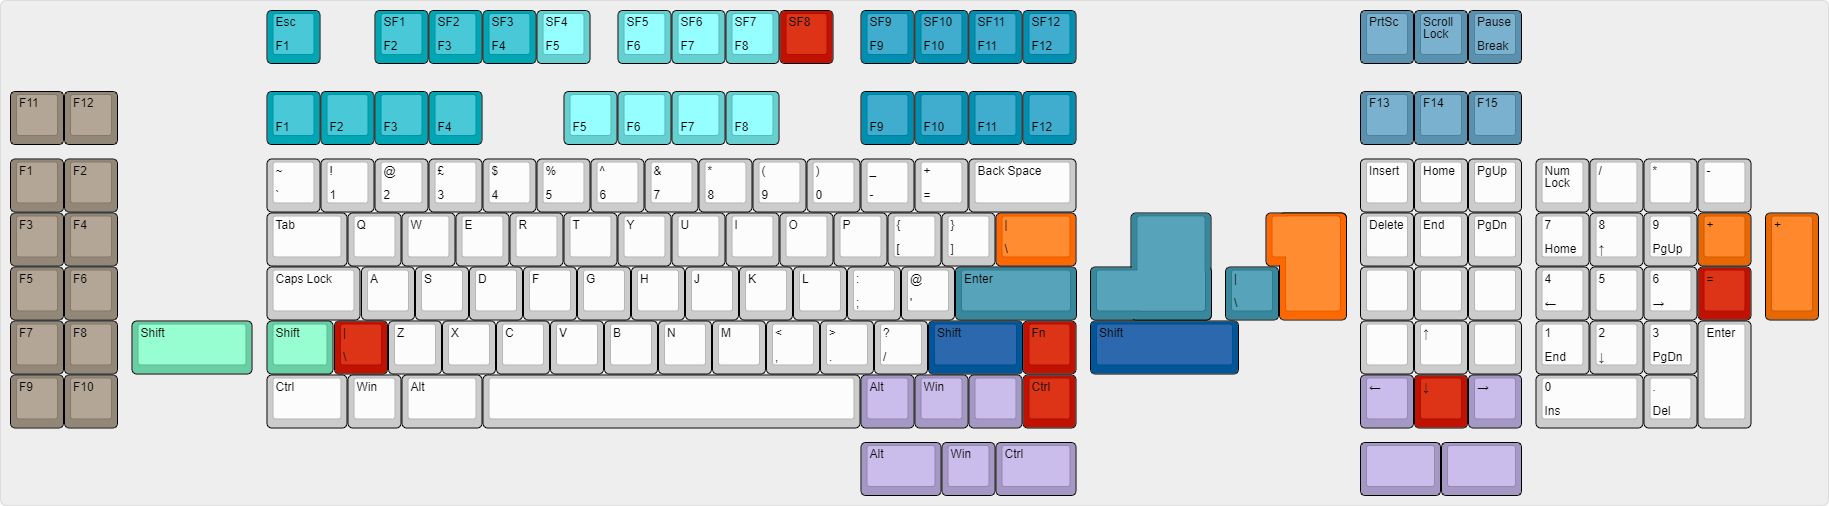 Omnikey_Layouts.png